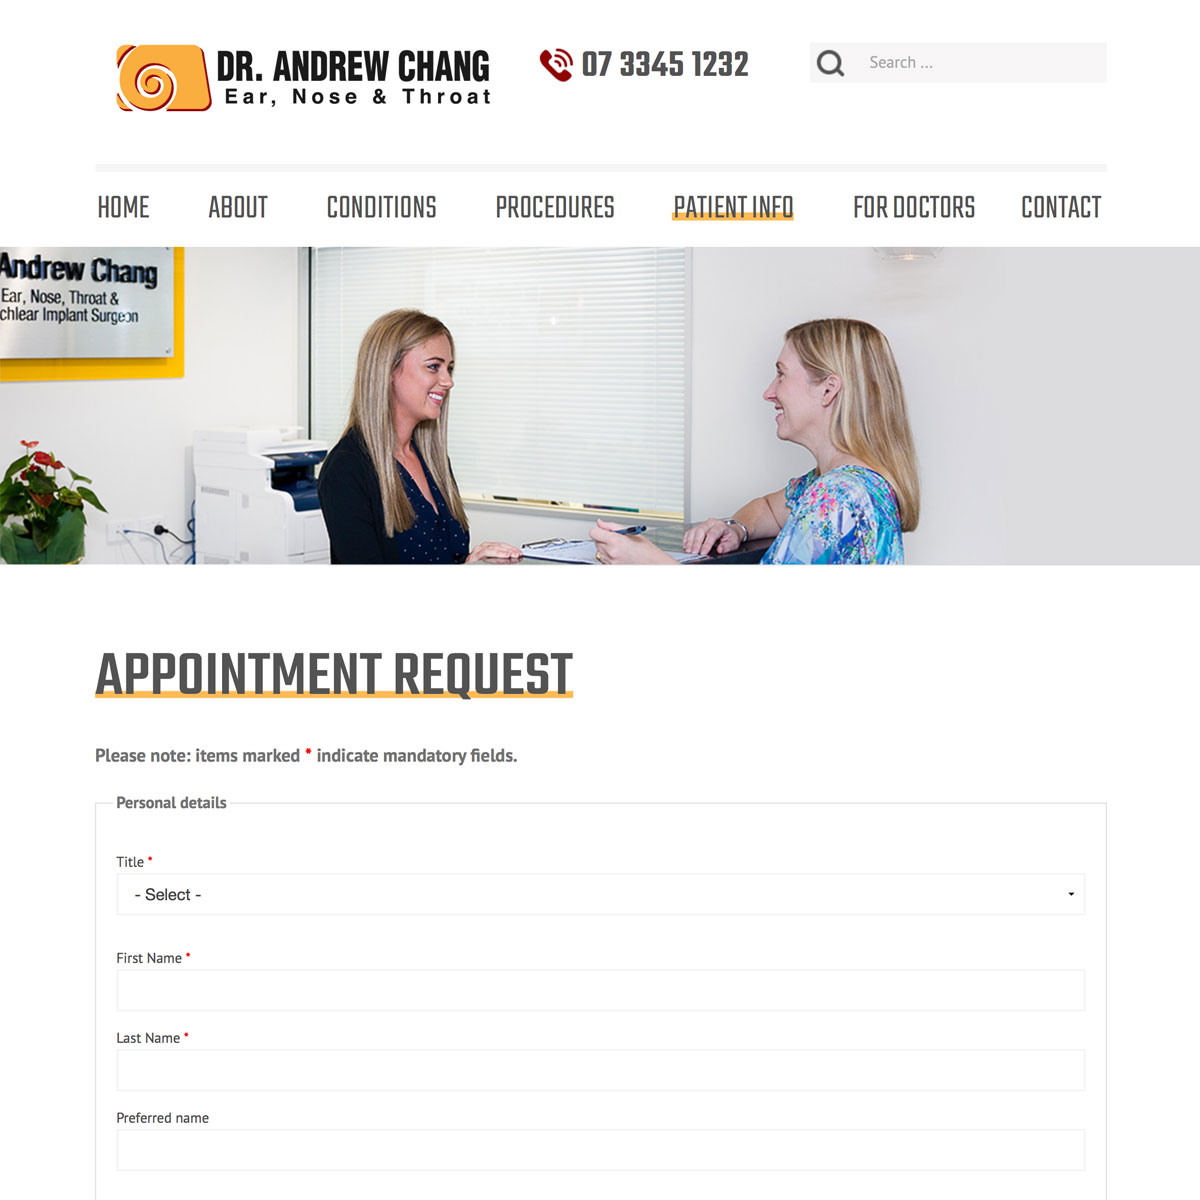 Dr Andrew Chang - Appointment Request